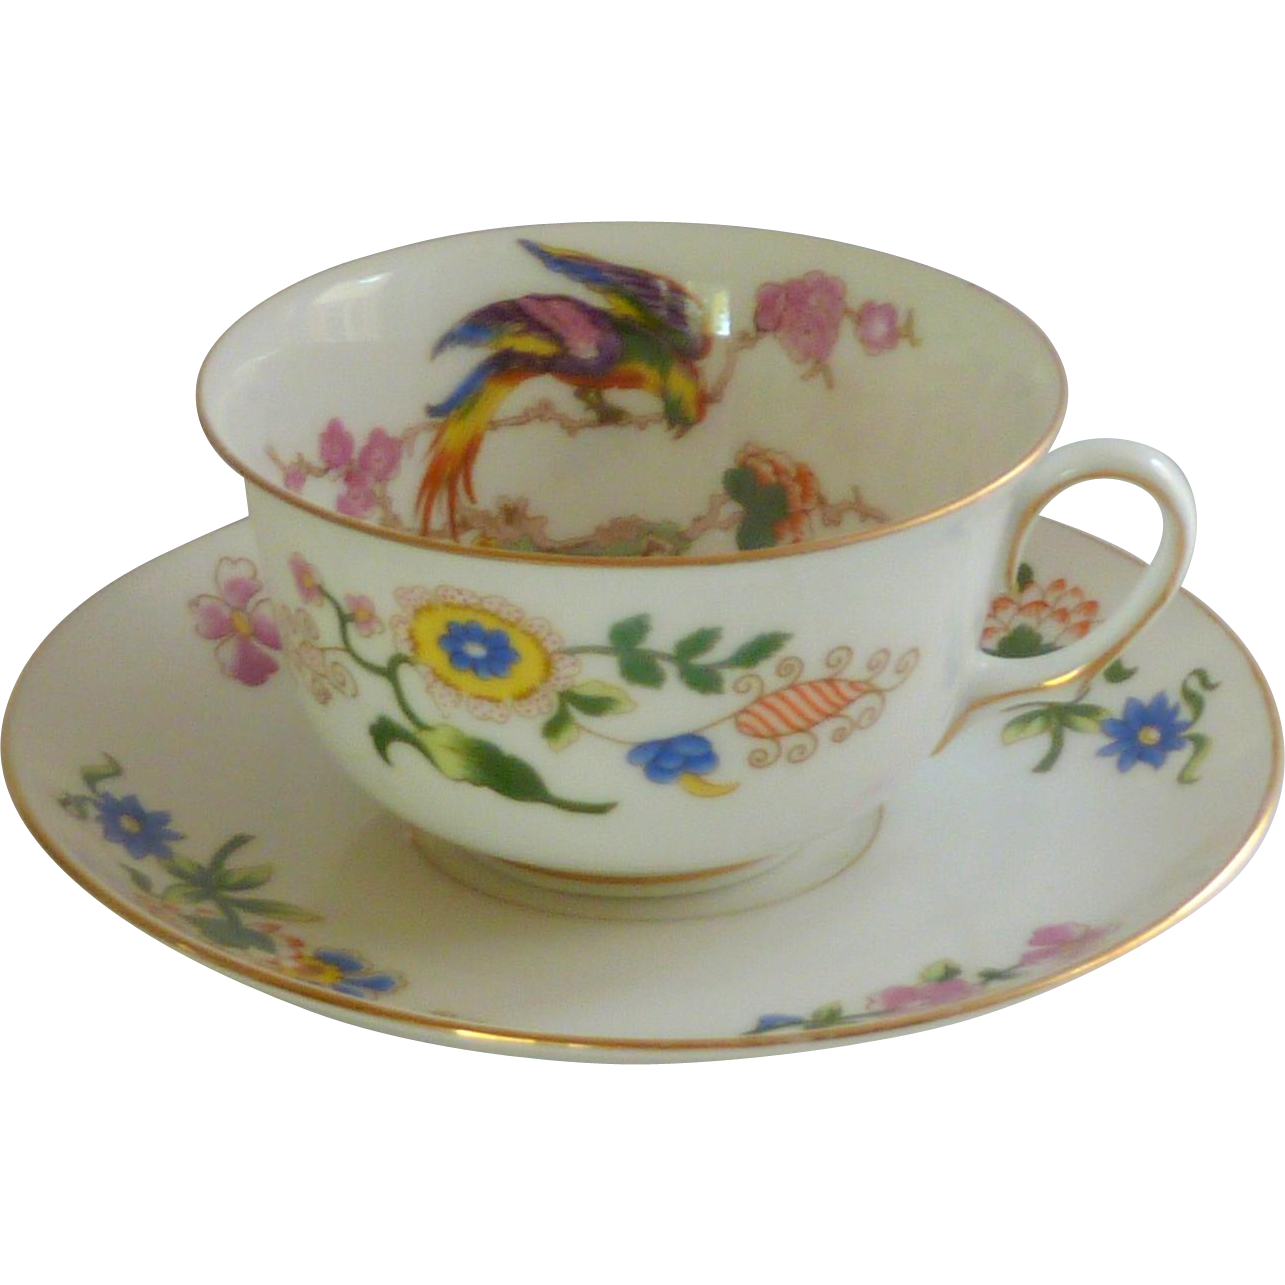 Epiag Czechoslovakia Tea Cup Bone China